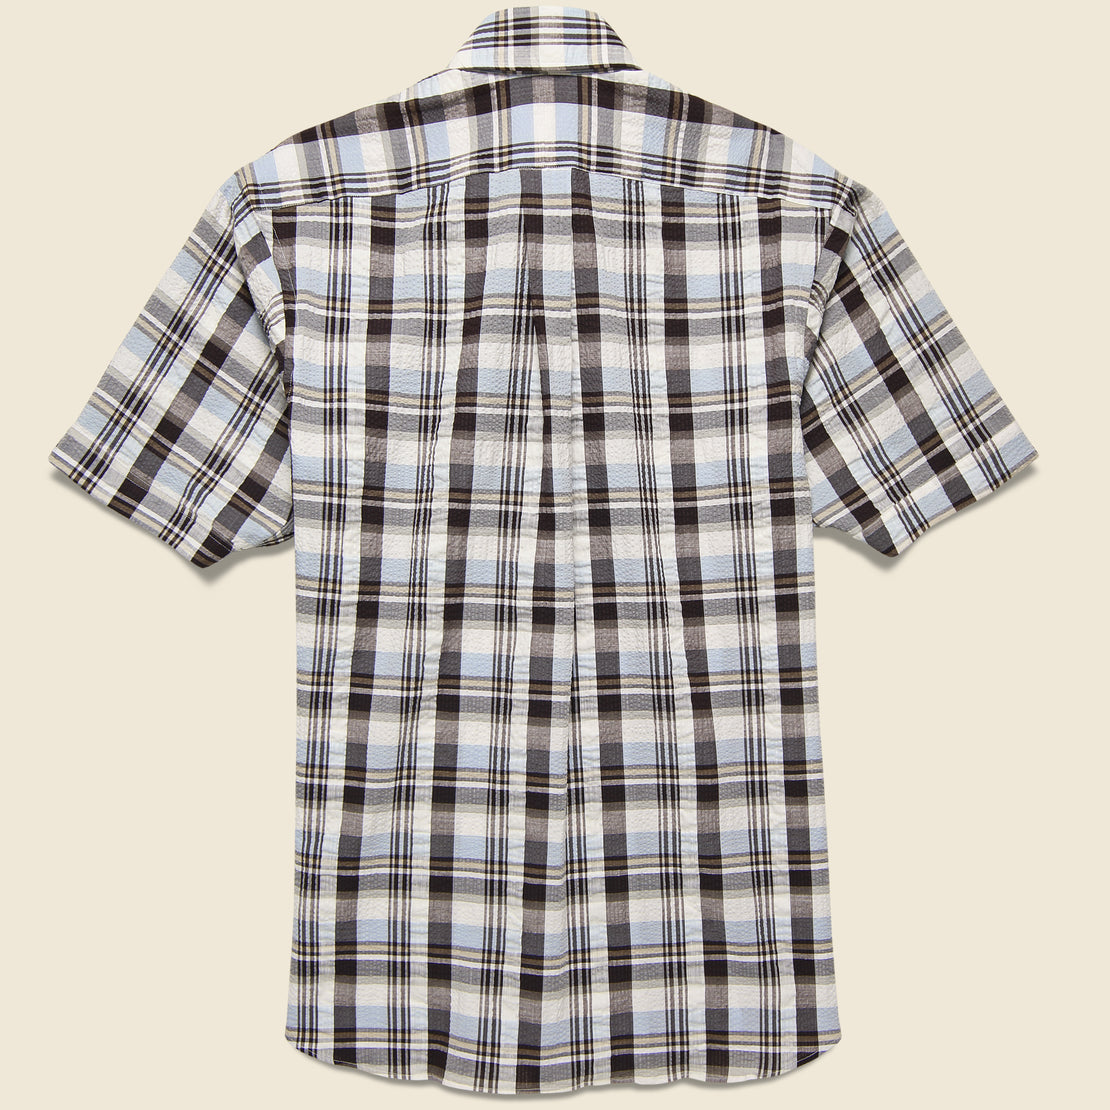 Plaid Seersucker Shirt - Brown/Grey